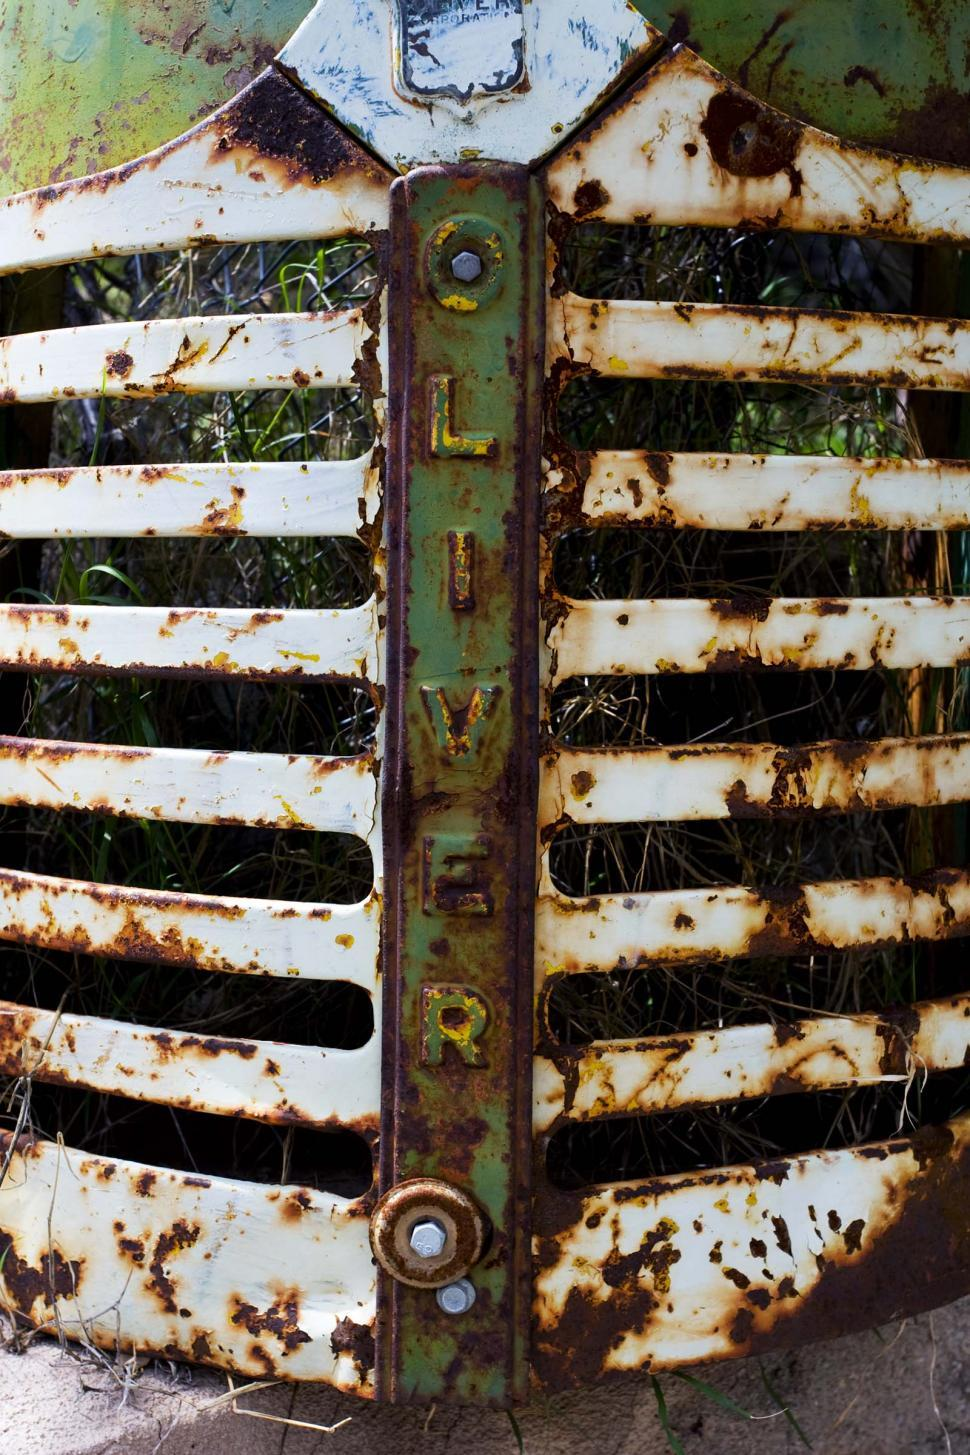 Download Free Stock HD Photo of Old rusted grille Online